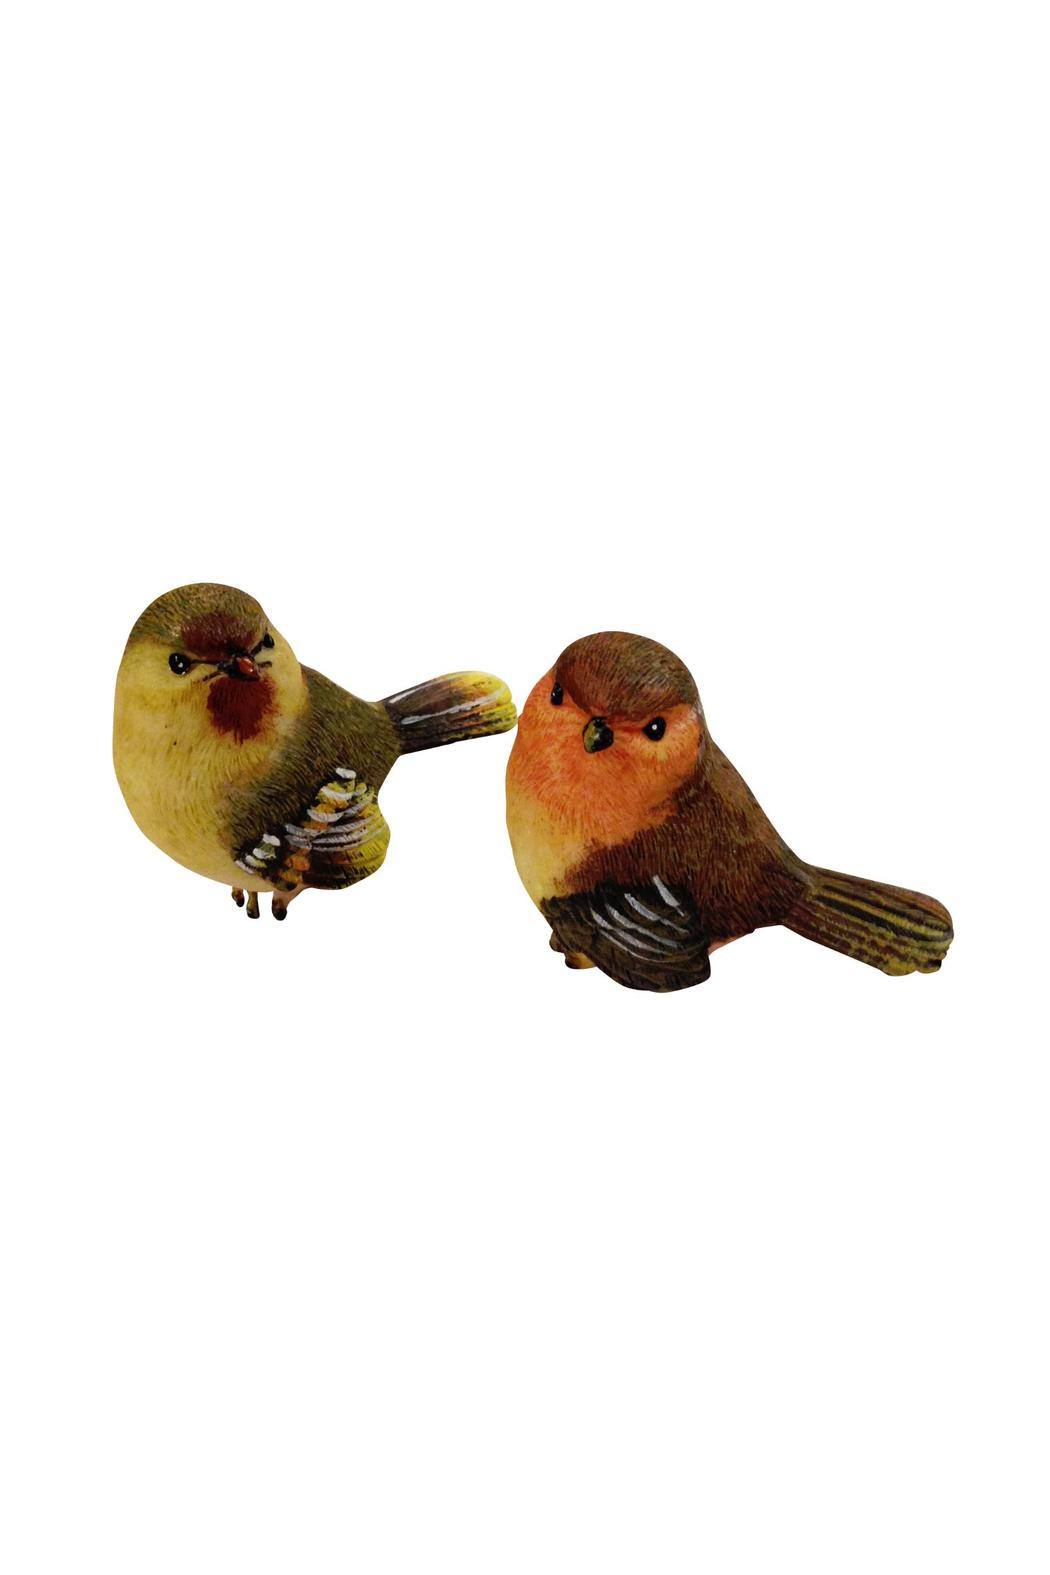 Ganz chickadee bird figurines from woodstock by house and garden boutique shoptiques - Chickadee figurine ...